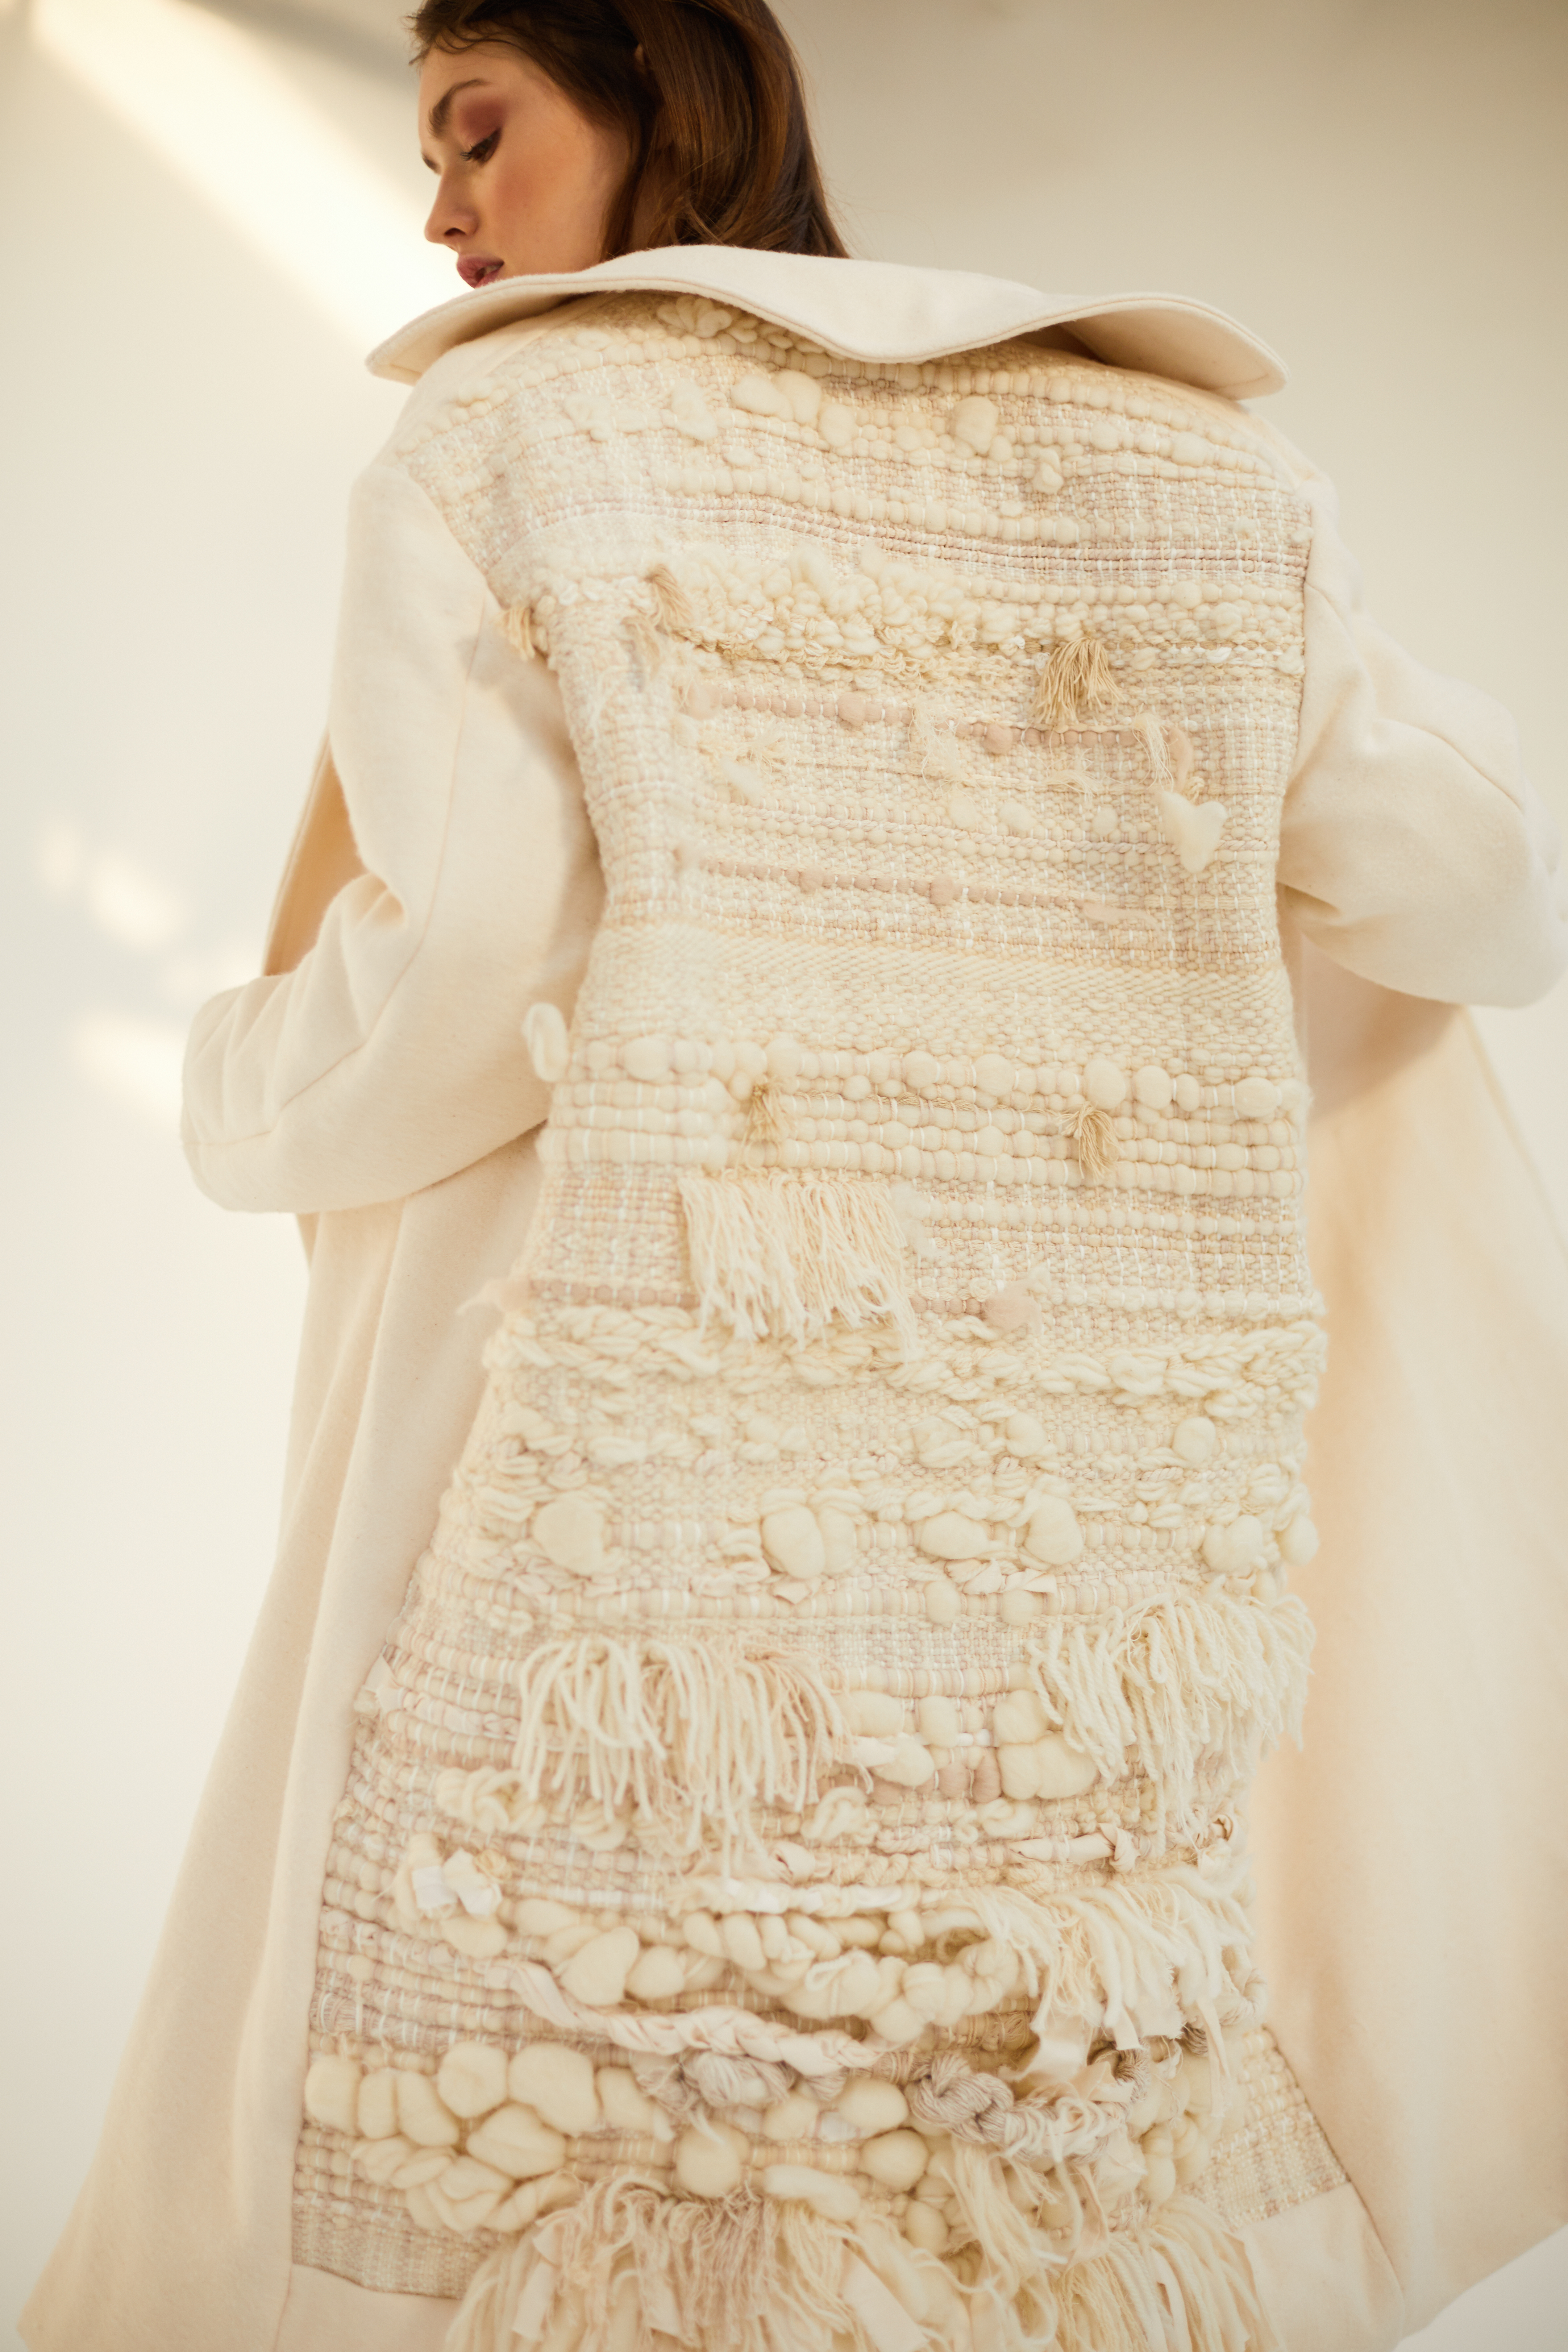 Sonia_Carrasco_Collection_Sustainable_Coat_tapestry_white_01